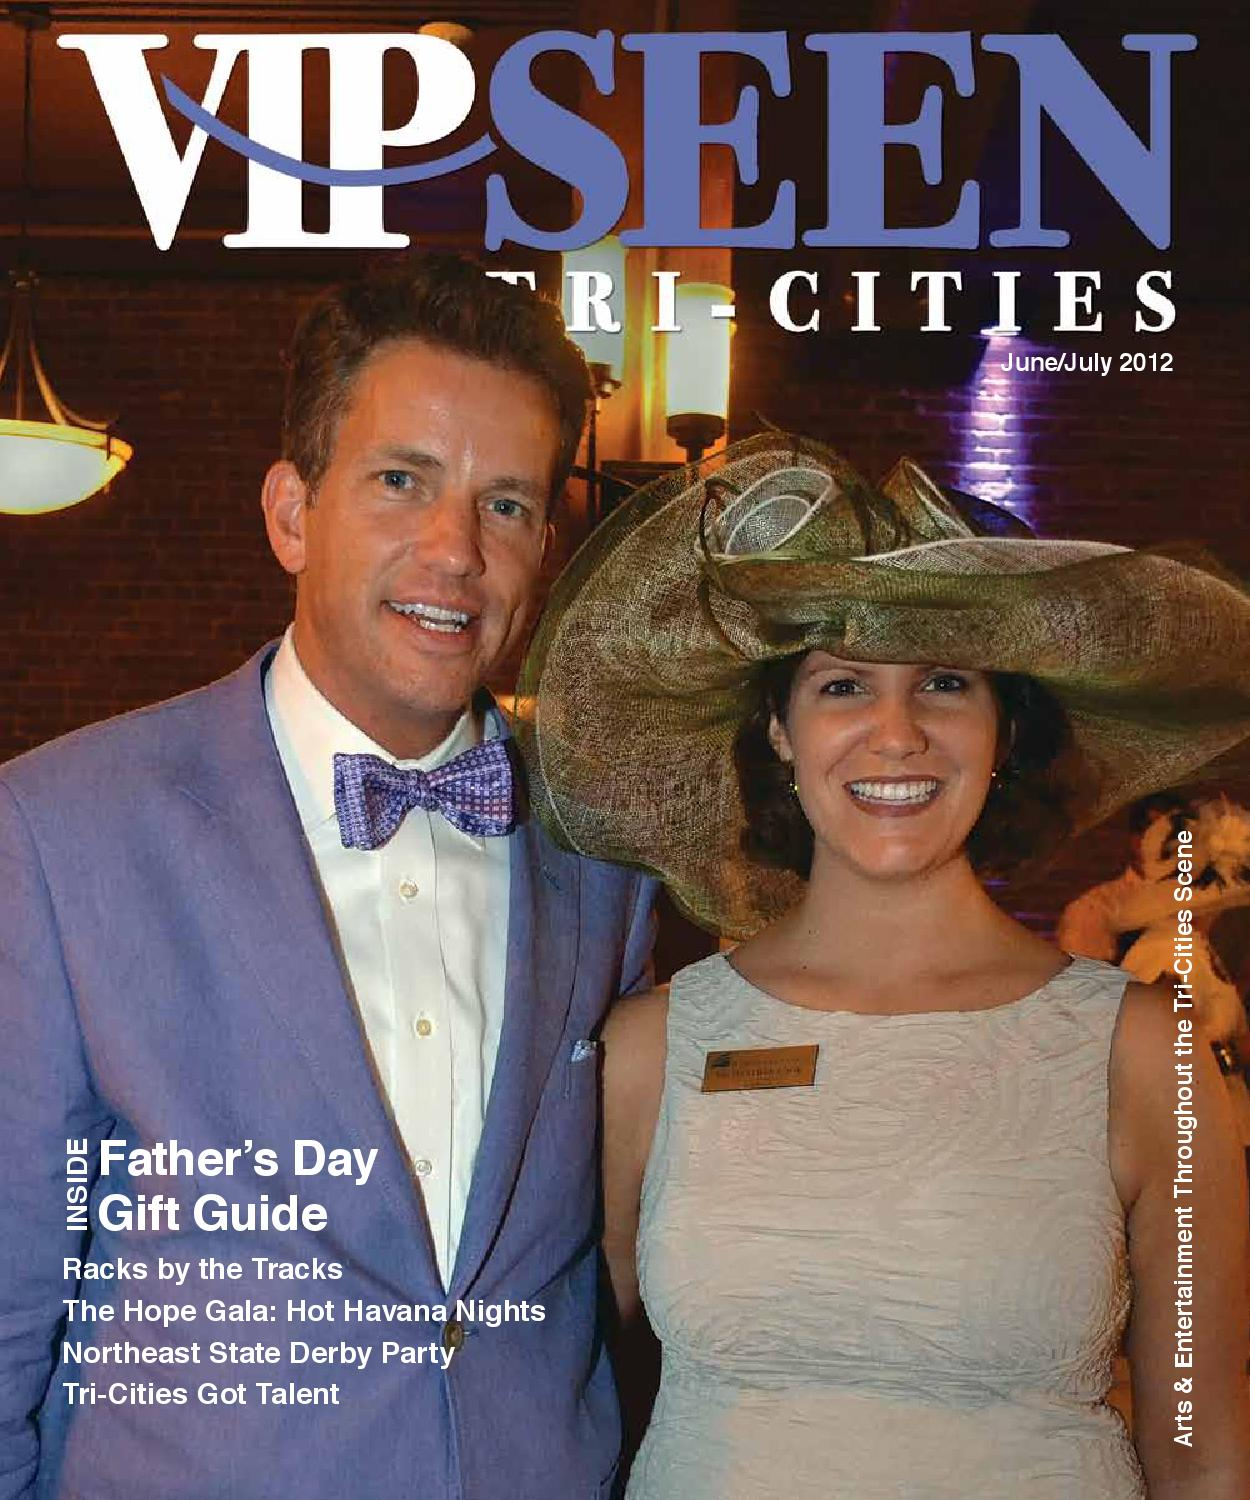 Alta Cucina Restaurant Johnson City Tn June Vipseen By Vipseen Issuu